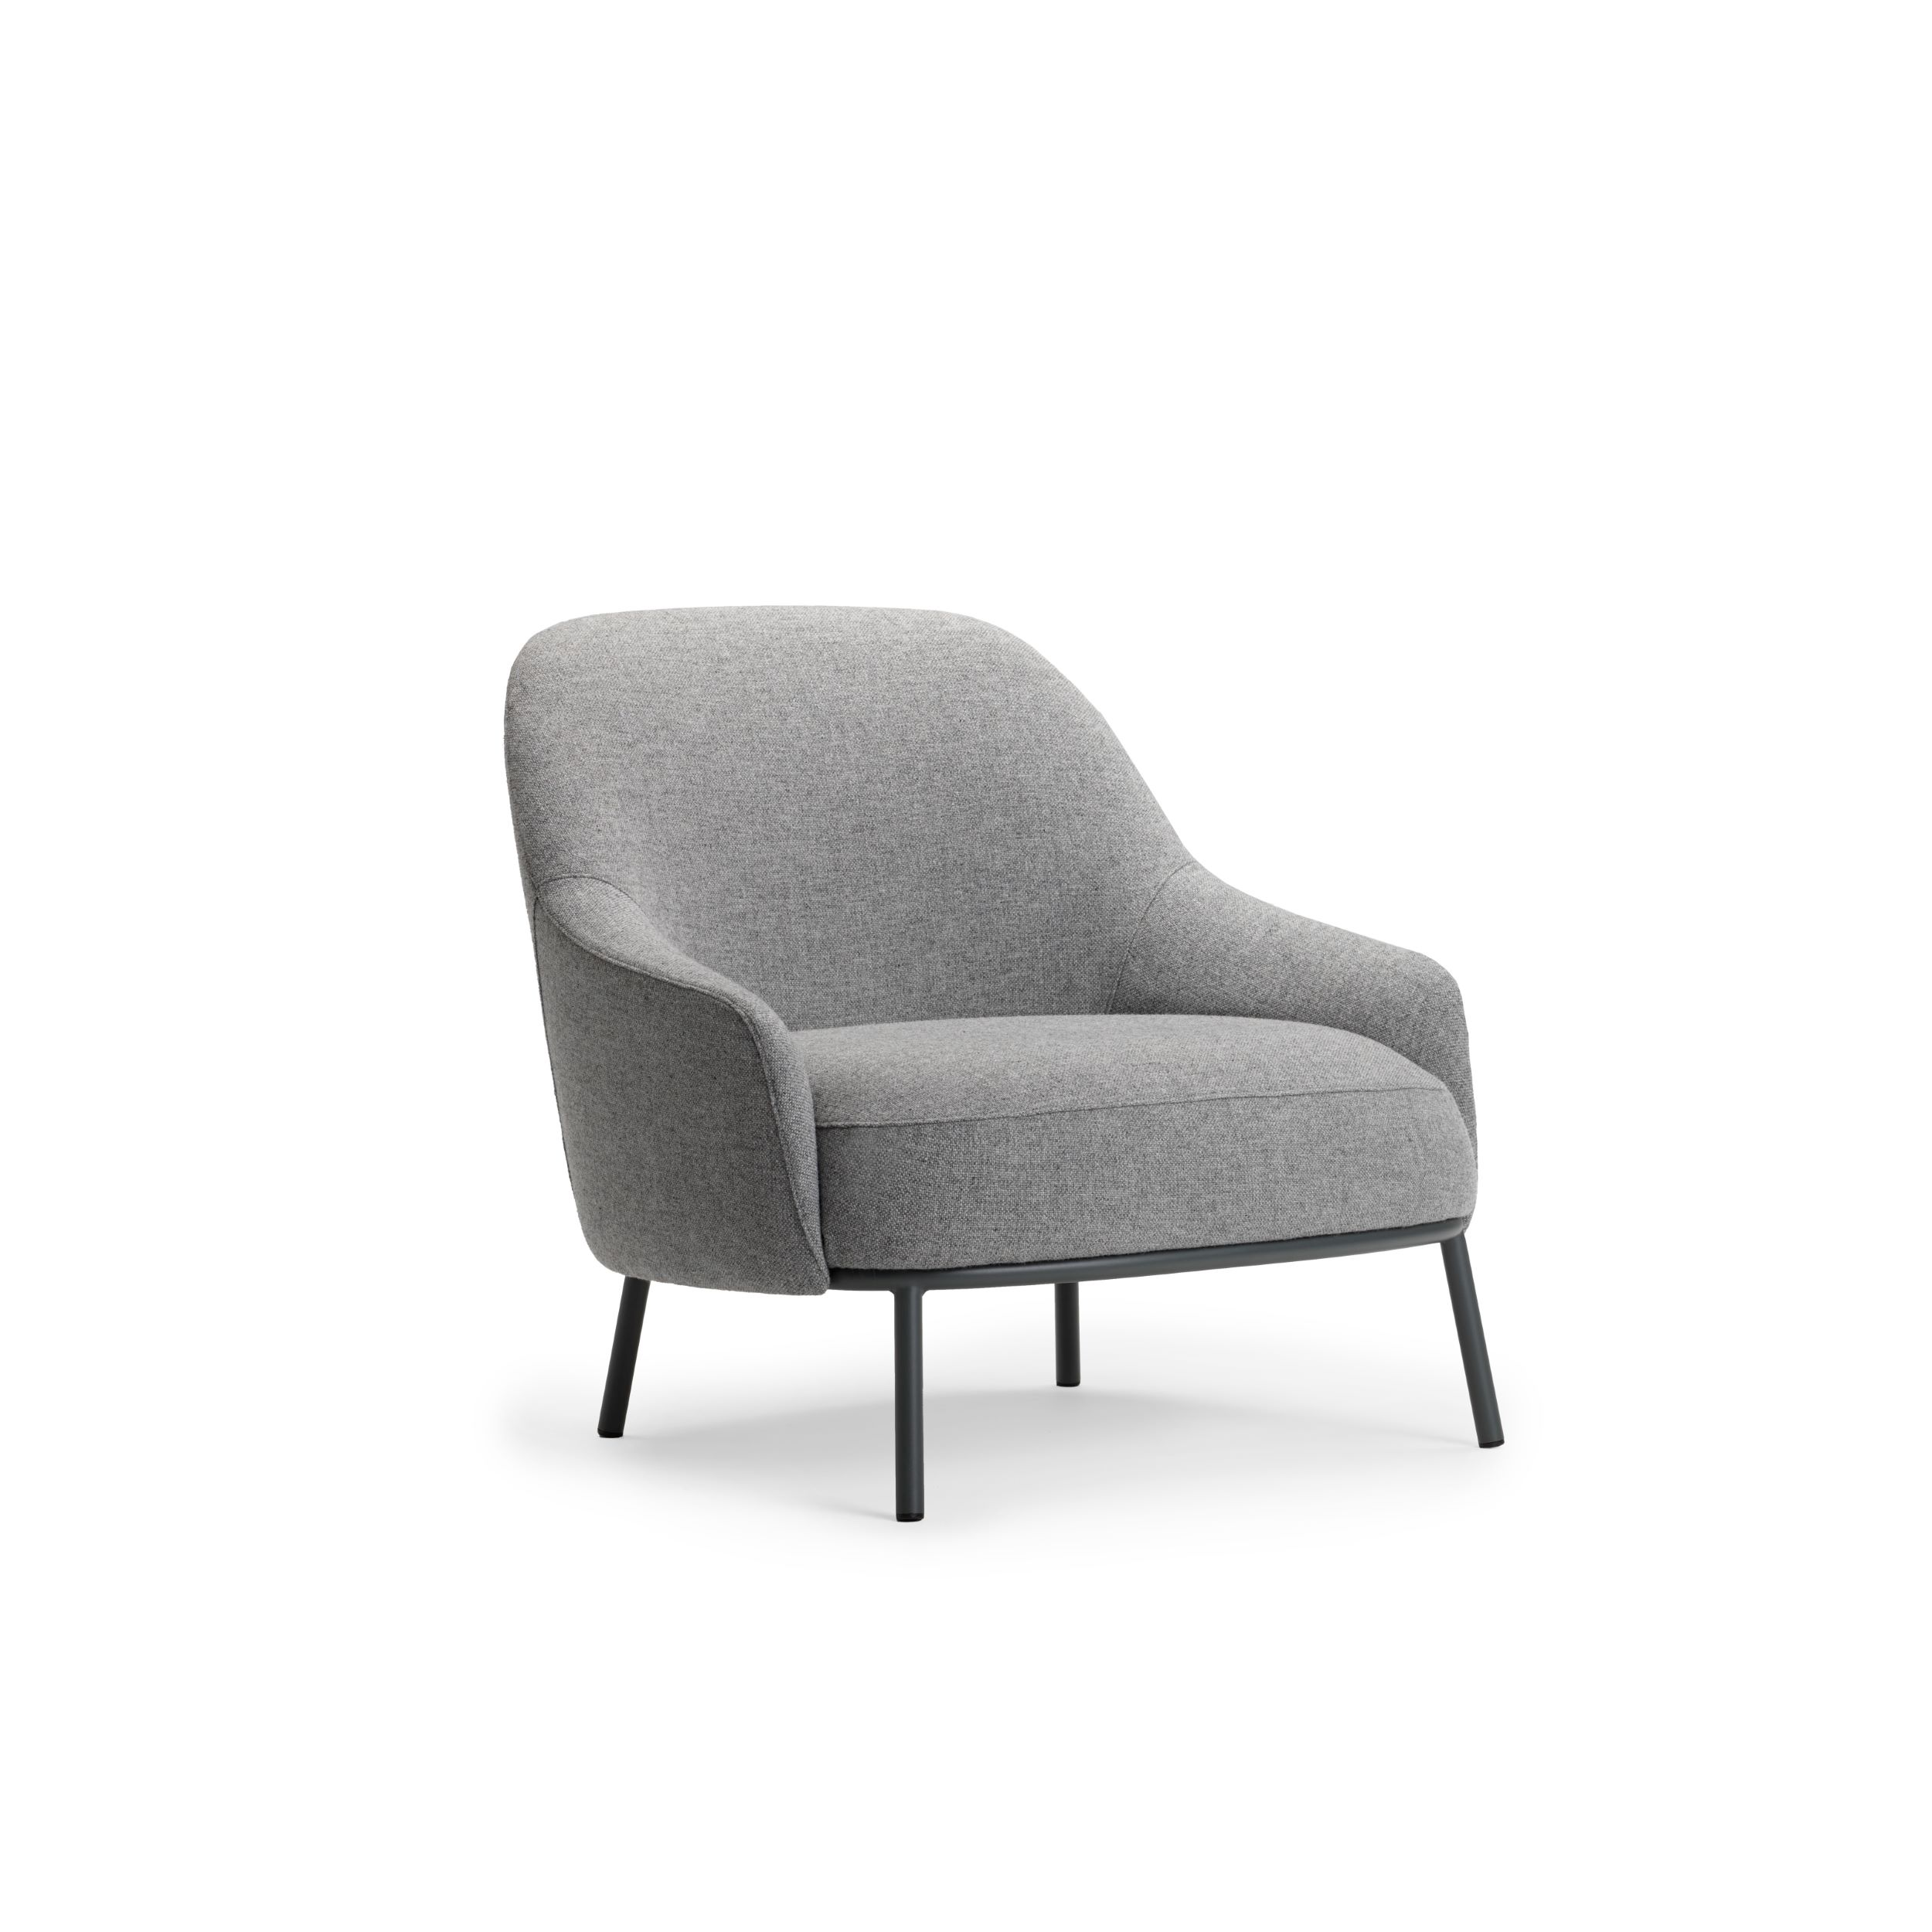 Shift Classic Easy Chair Offecct